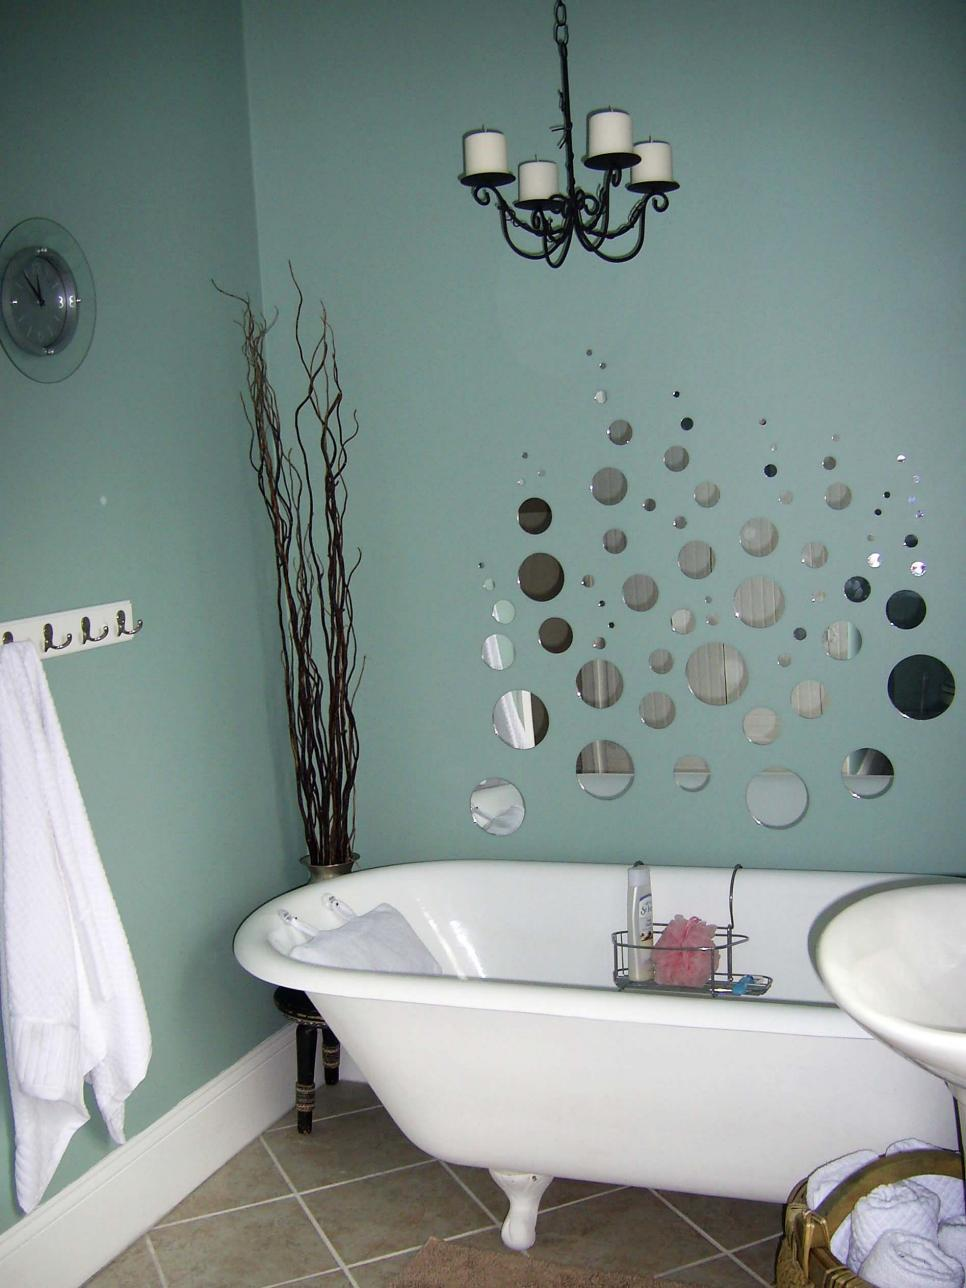 Bathrooms on a budget our 10 favorites from rate my space for Diy bathroom decor ideas